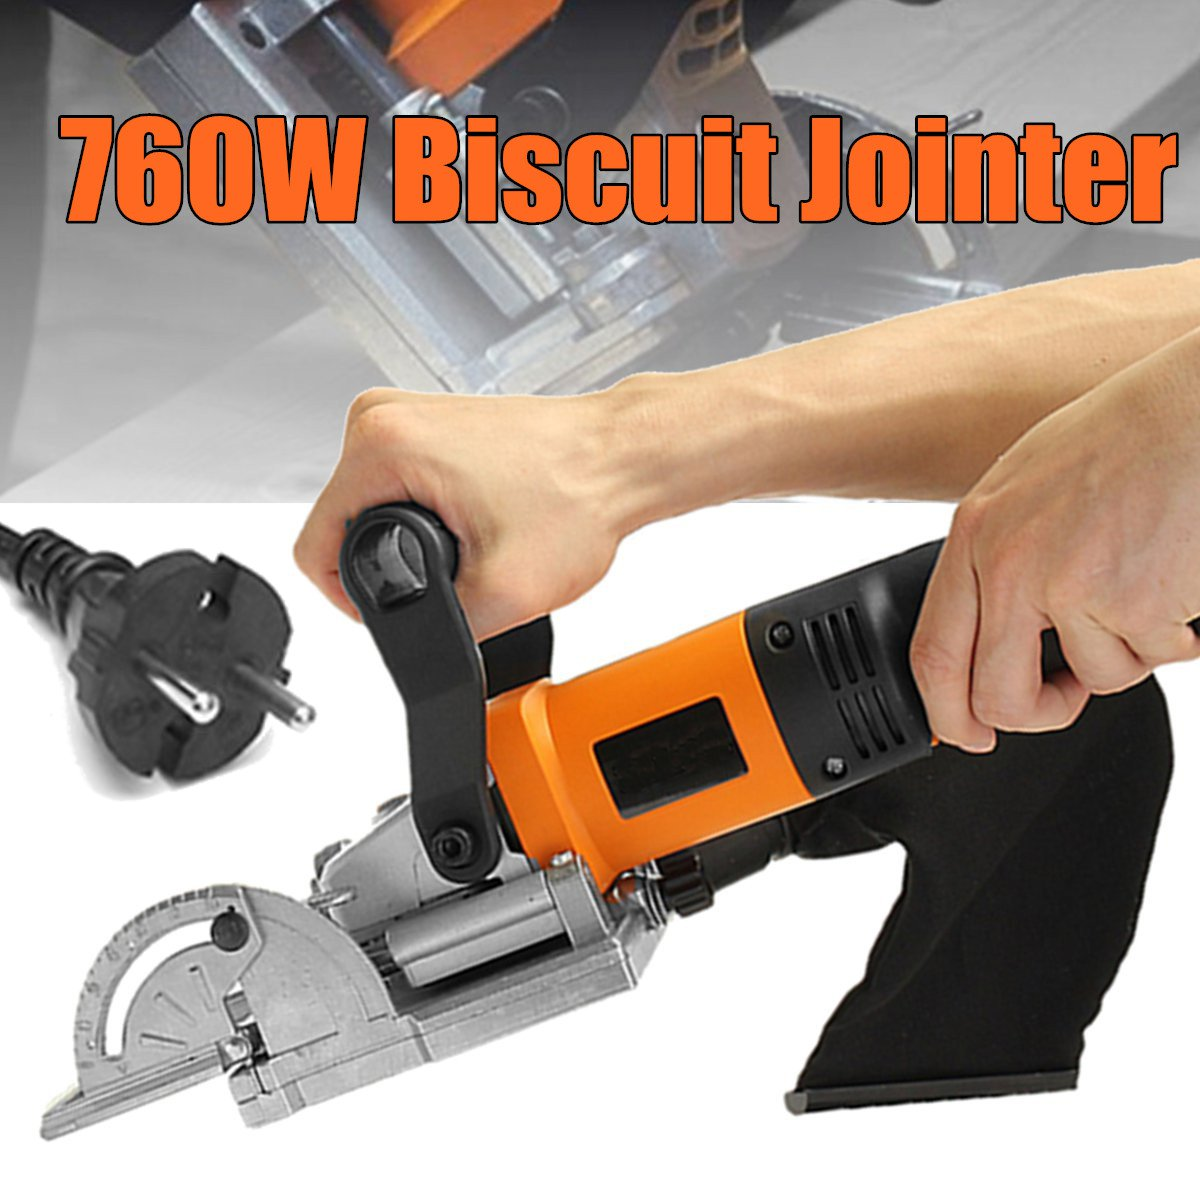 760W Biscuit Jointer Wood Working Tenoning Machine Biscuit Machine Puzzle Machine Groover